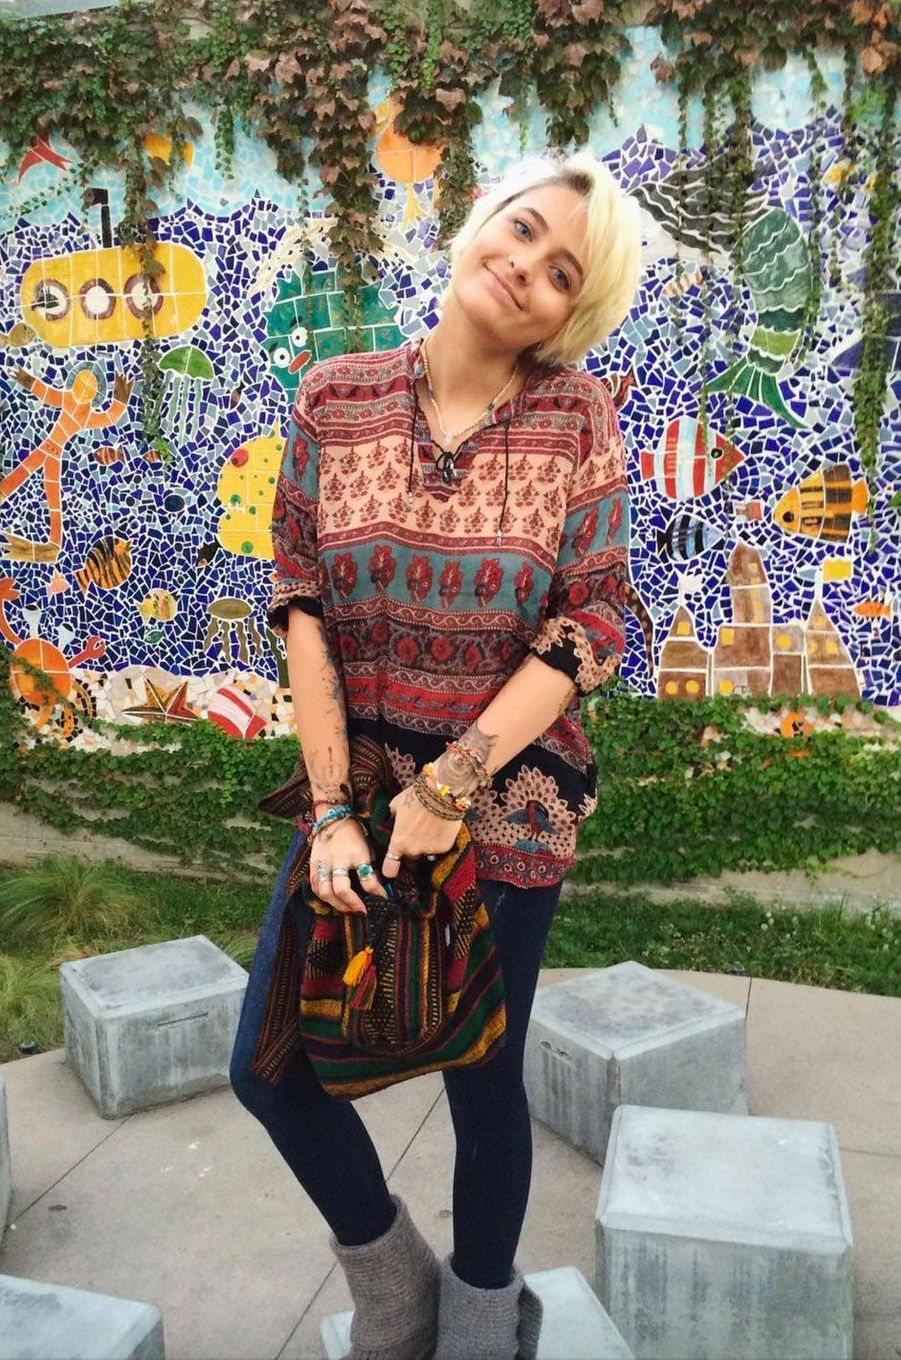 People Style : le boho chic selon Paris Jackson